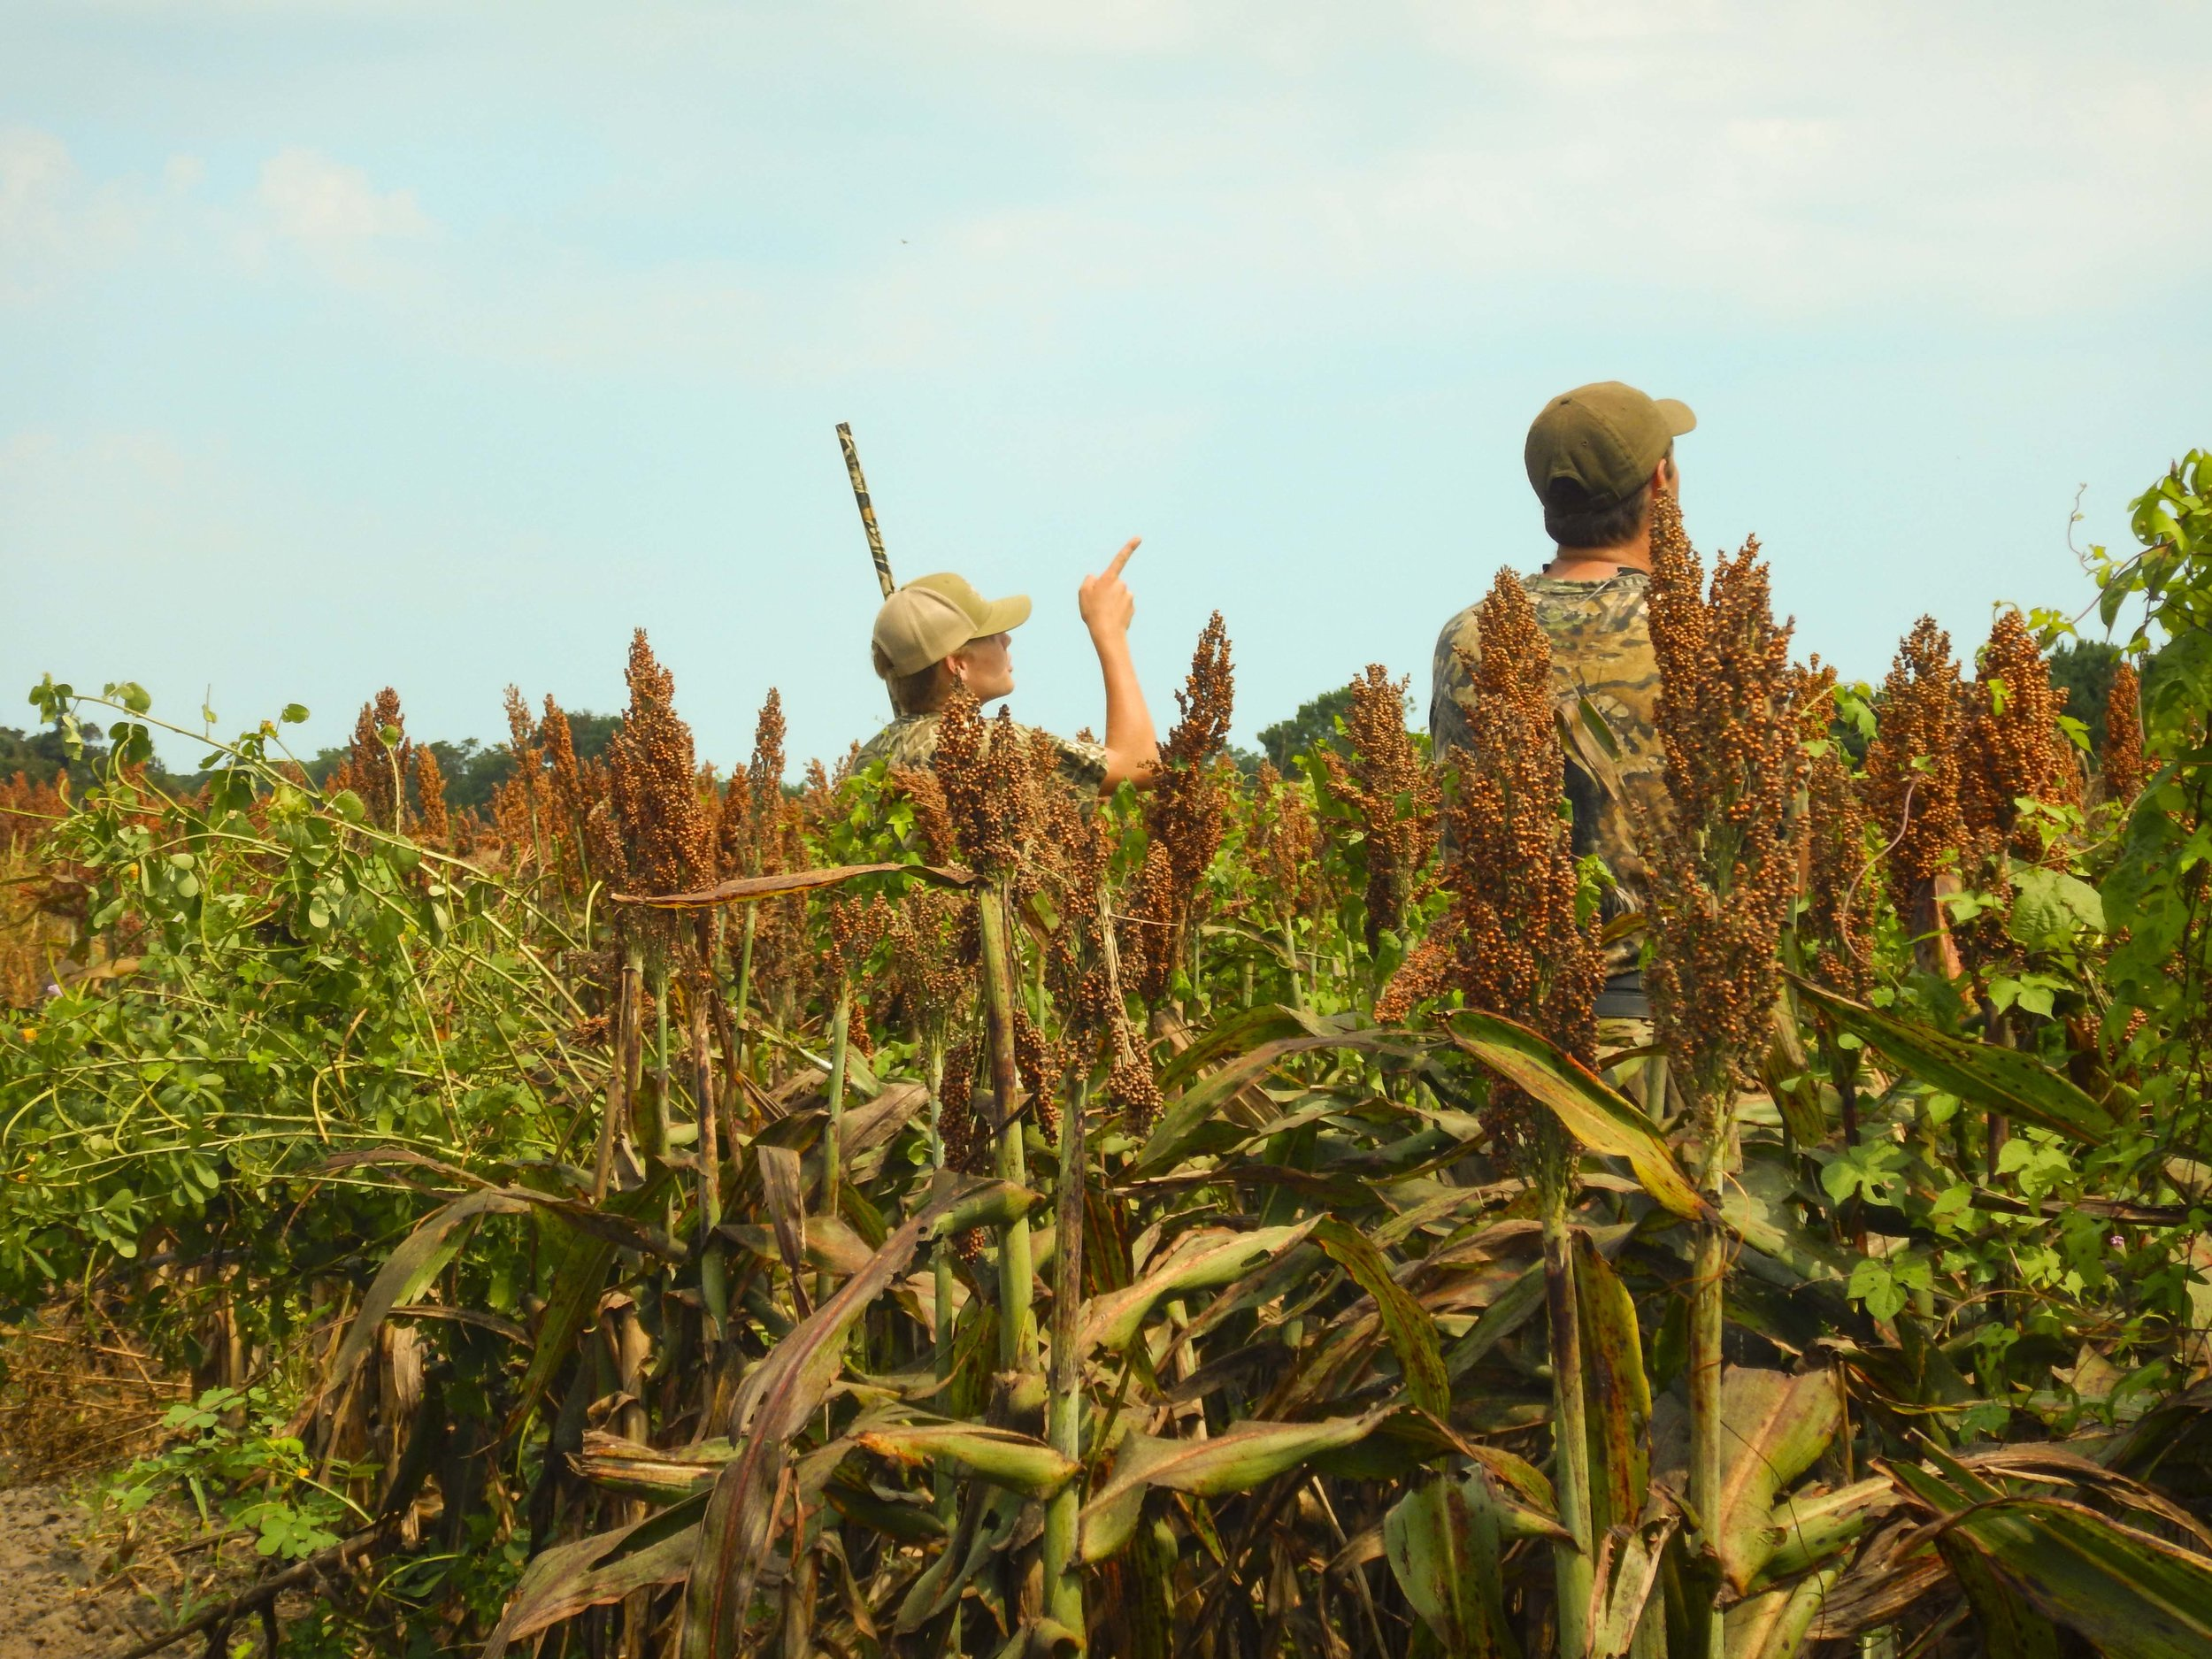 Participants at a special Youth-only dove hunt at the SCDNR's Botany Bay WMA & Heritage Preserve scan the sky looking for mourning doves. photo by David Lucas